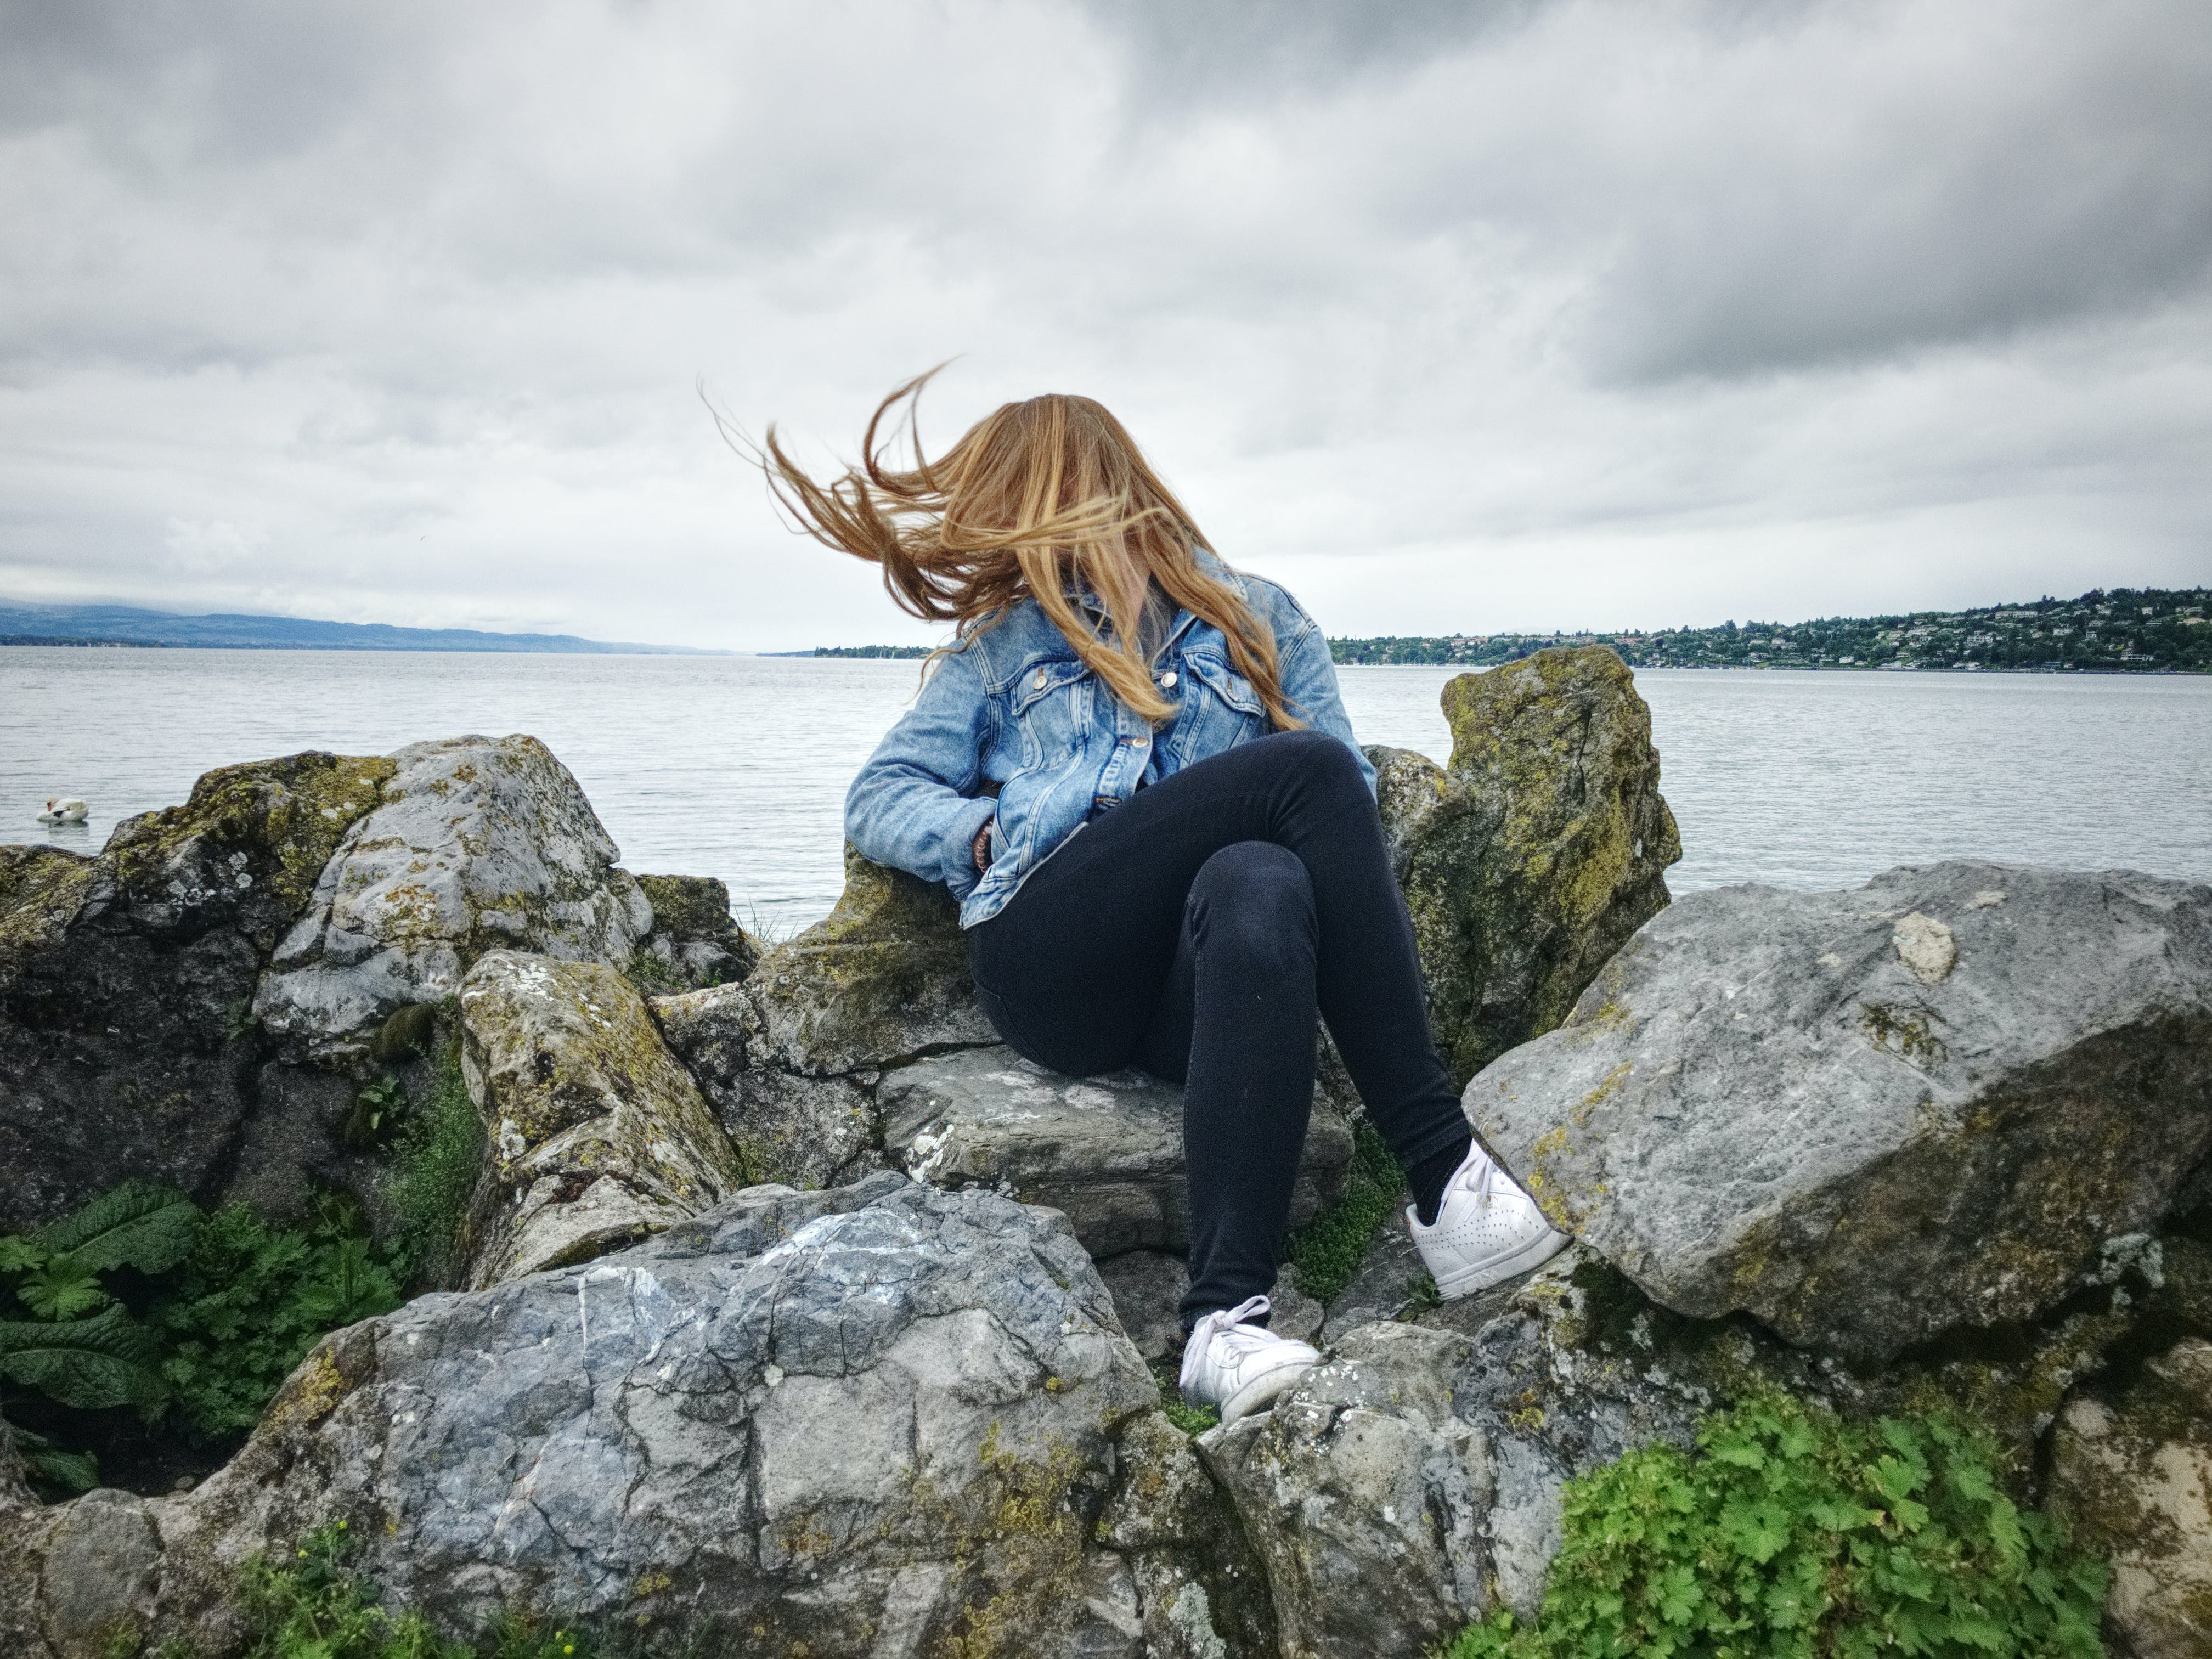 Woman With Blue Denim Collared Button-up Jacket and Black Jeans Sitting on Gray Rock Watching Lakeview